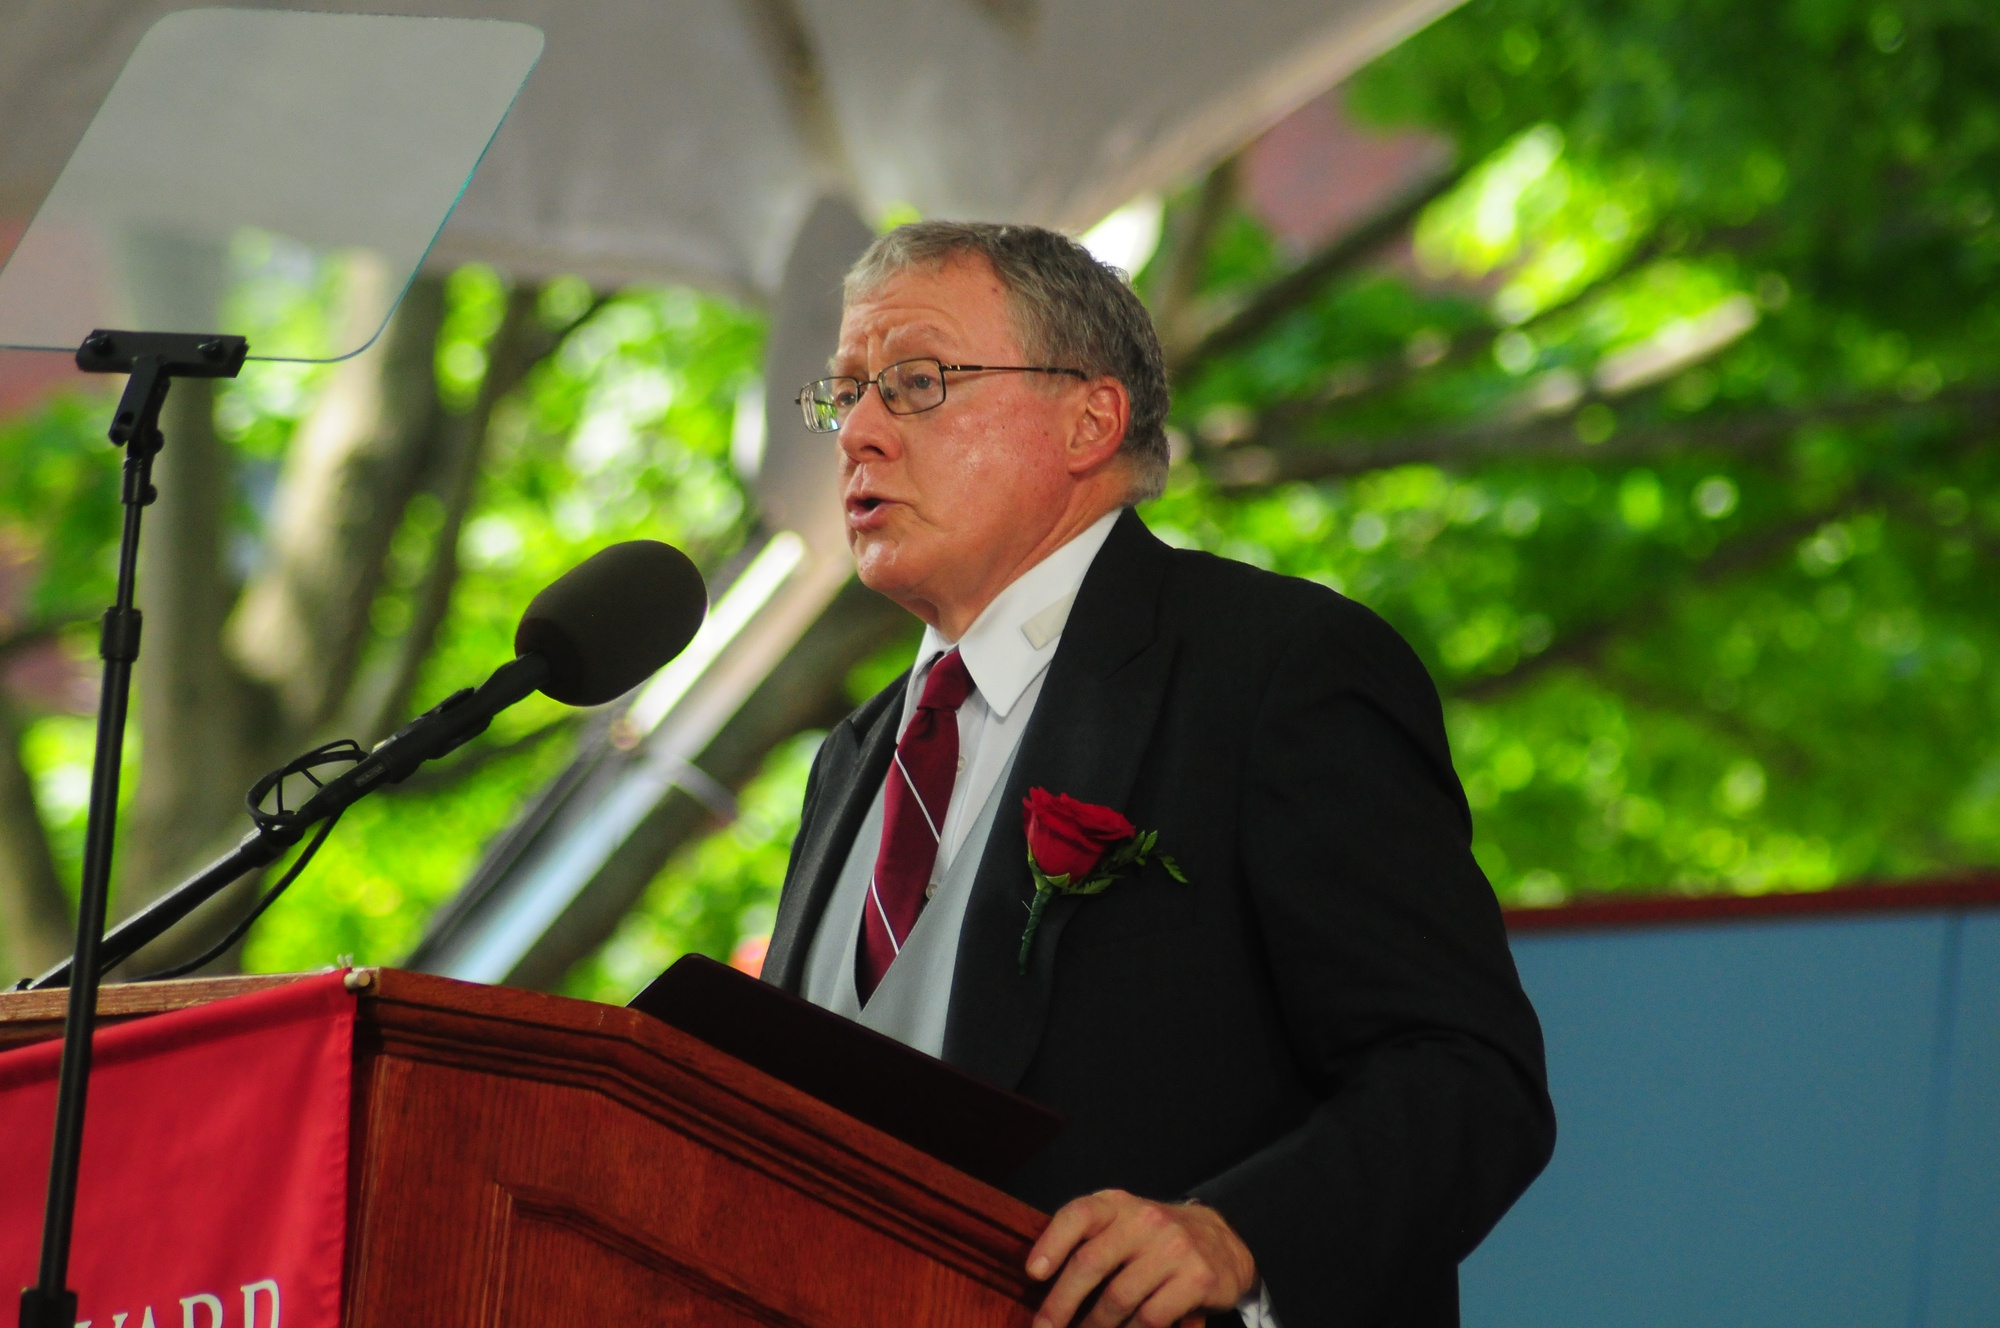 University Treasurer James F. Rothenberg '68, pictured at Commencement in 2013, will step down from his post in July 2014.